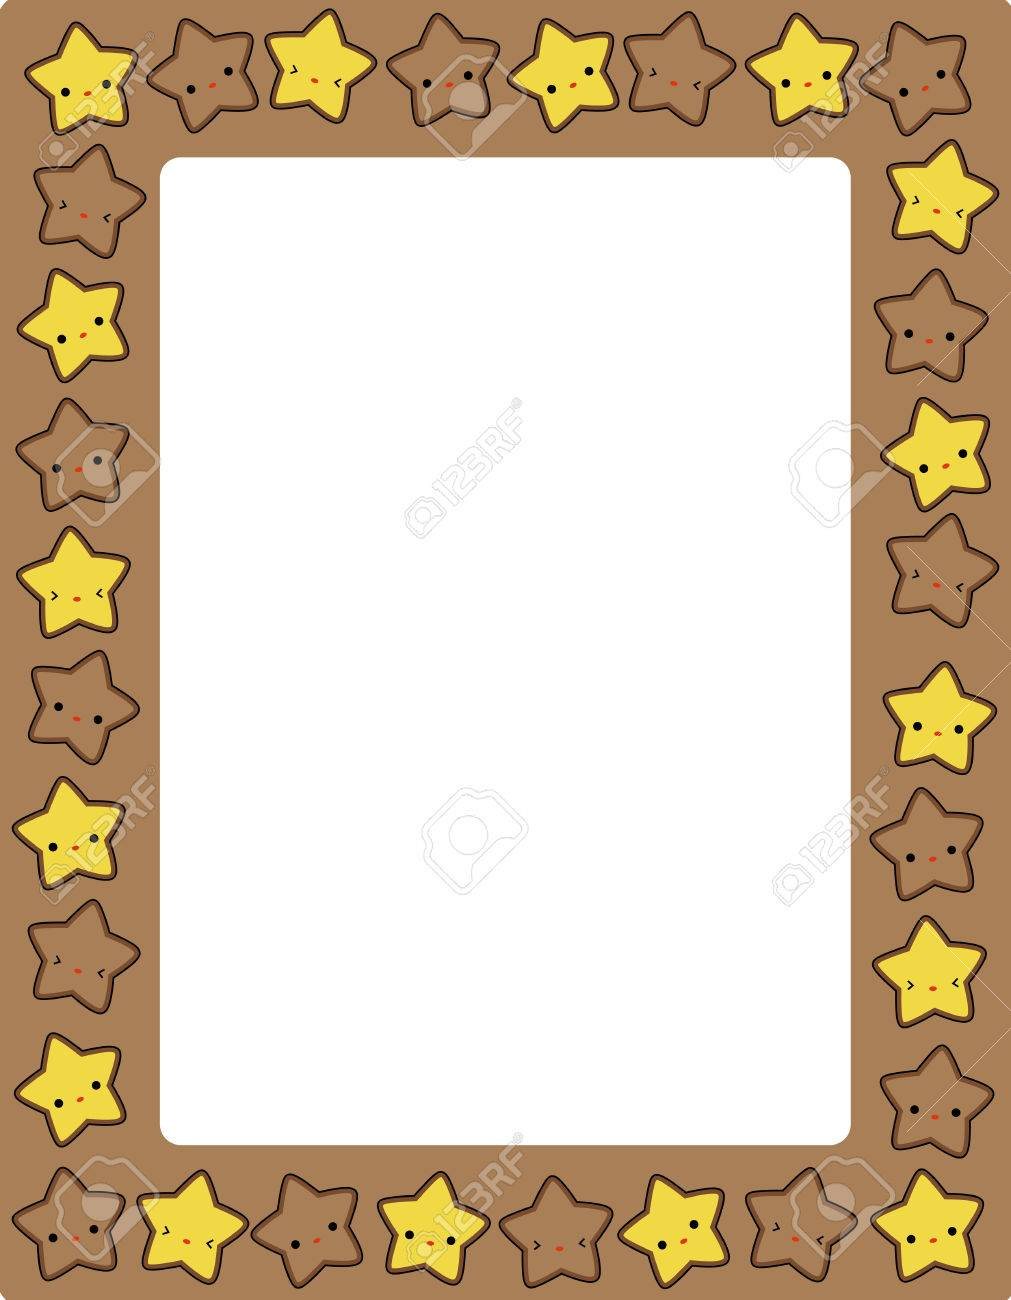 cute colorful stars border frame for greeting cards party